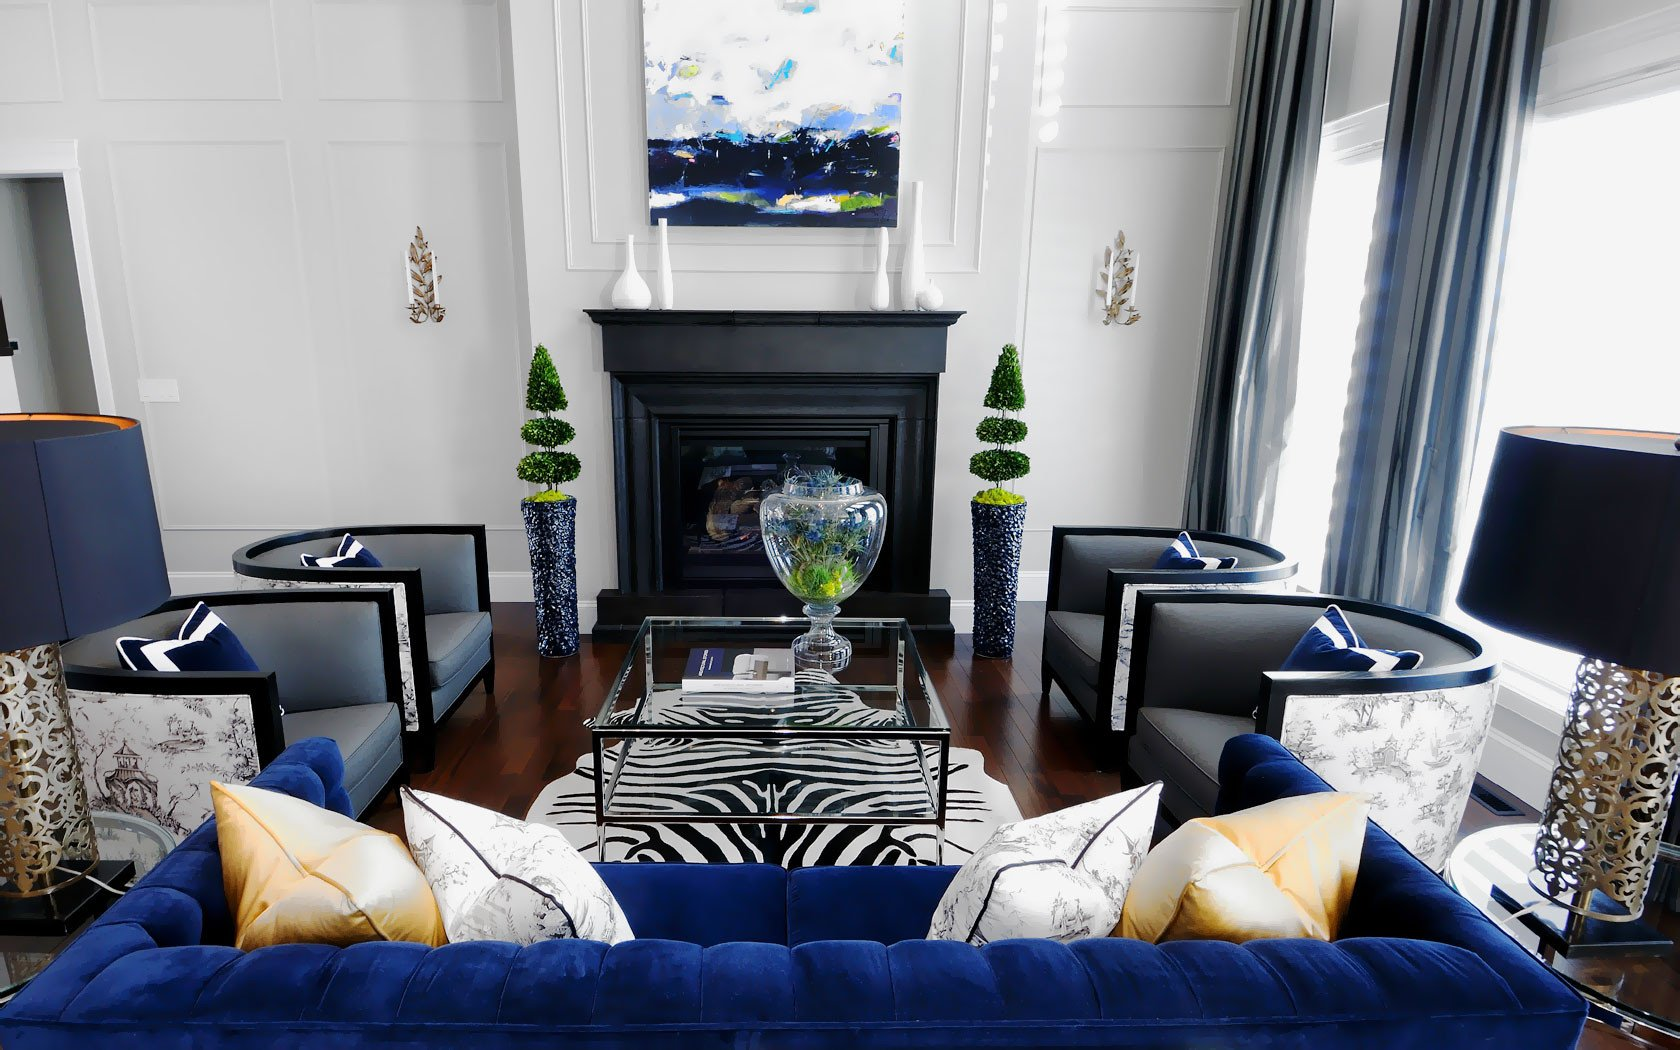 Royal Blue Living Room Decor 20 Of the Best Colors to Pair with Black or White